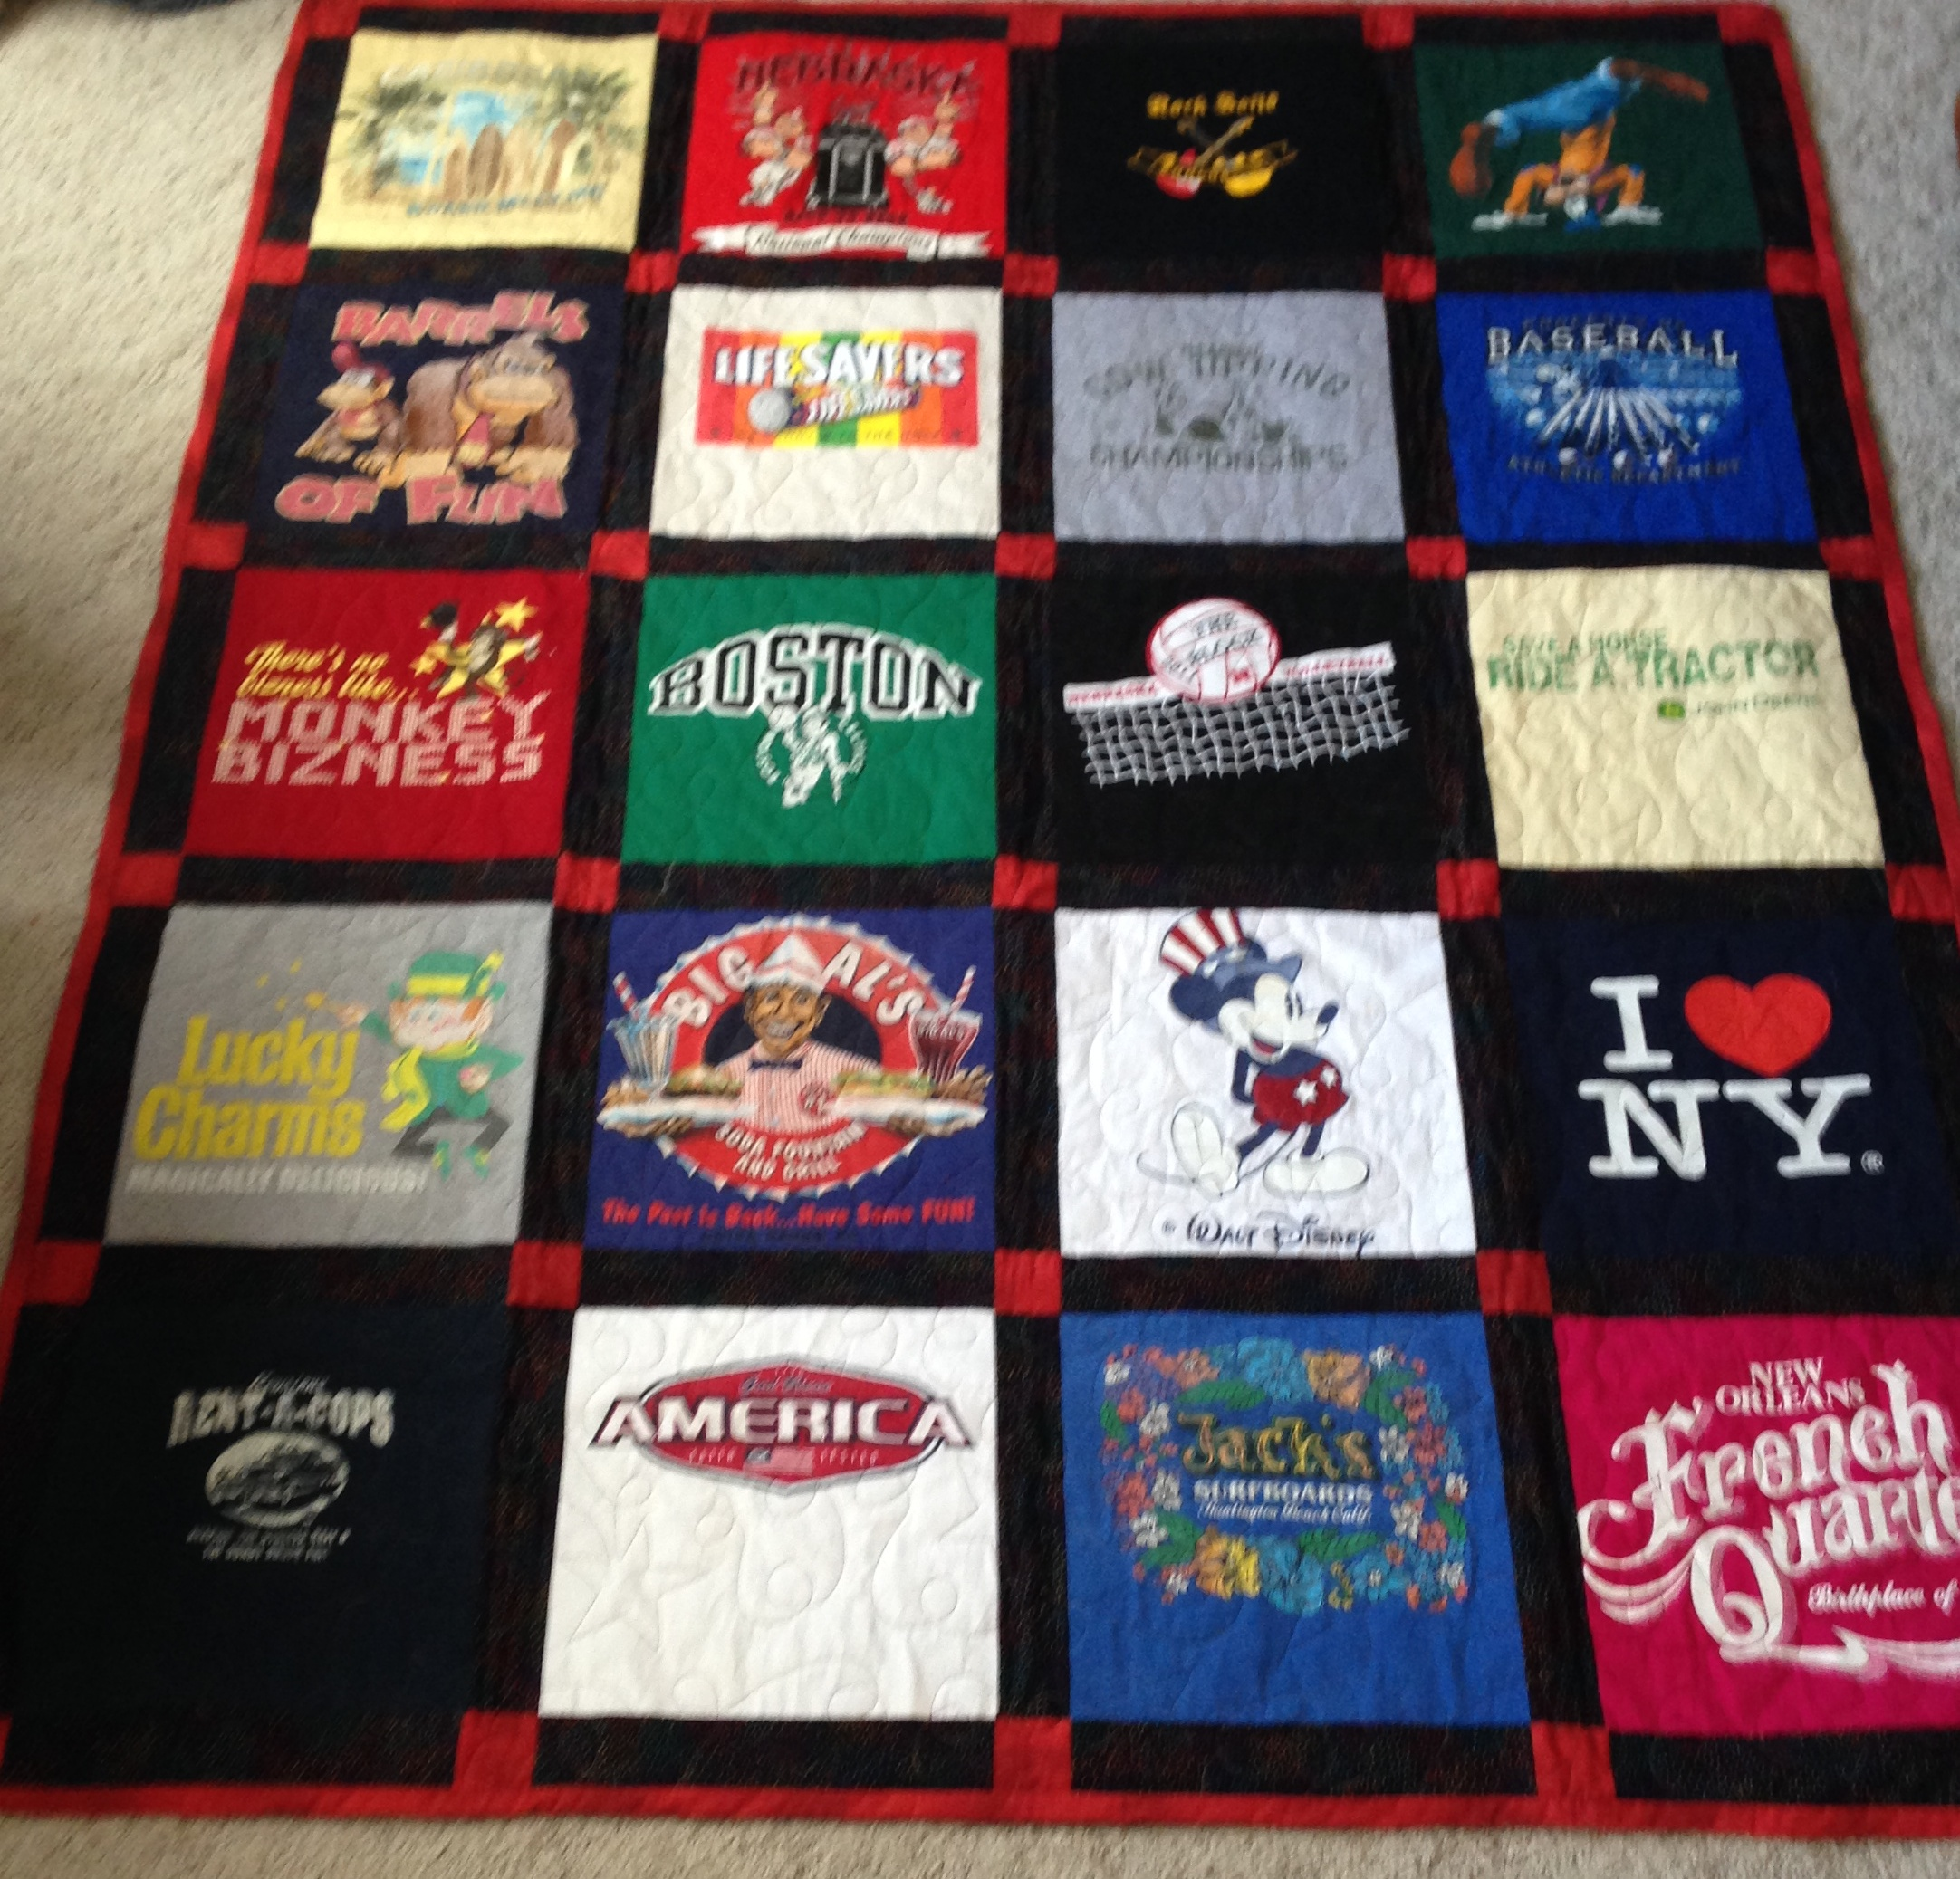 February 25, 2014 - Graduation Gifts: T-Shirt Quilts - Loftworks ... : pictures of tshirt quilts - Adamdwight.com